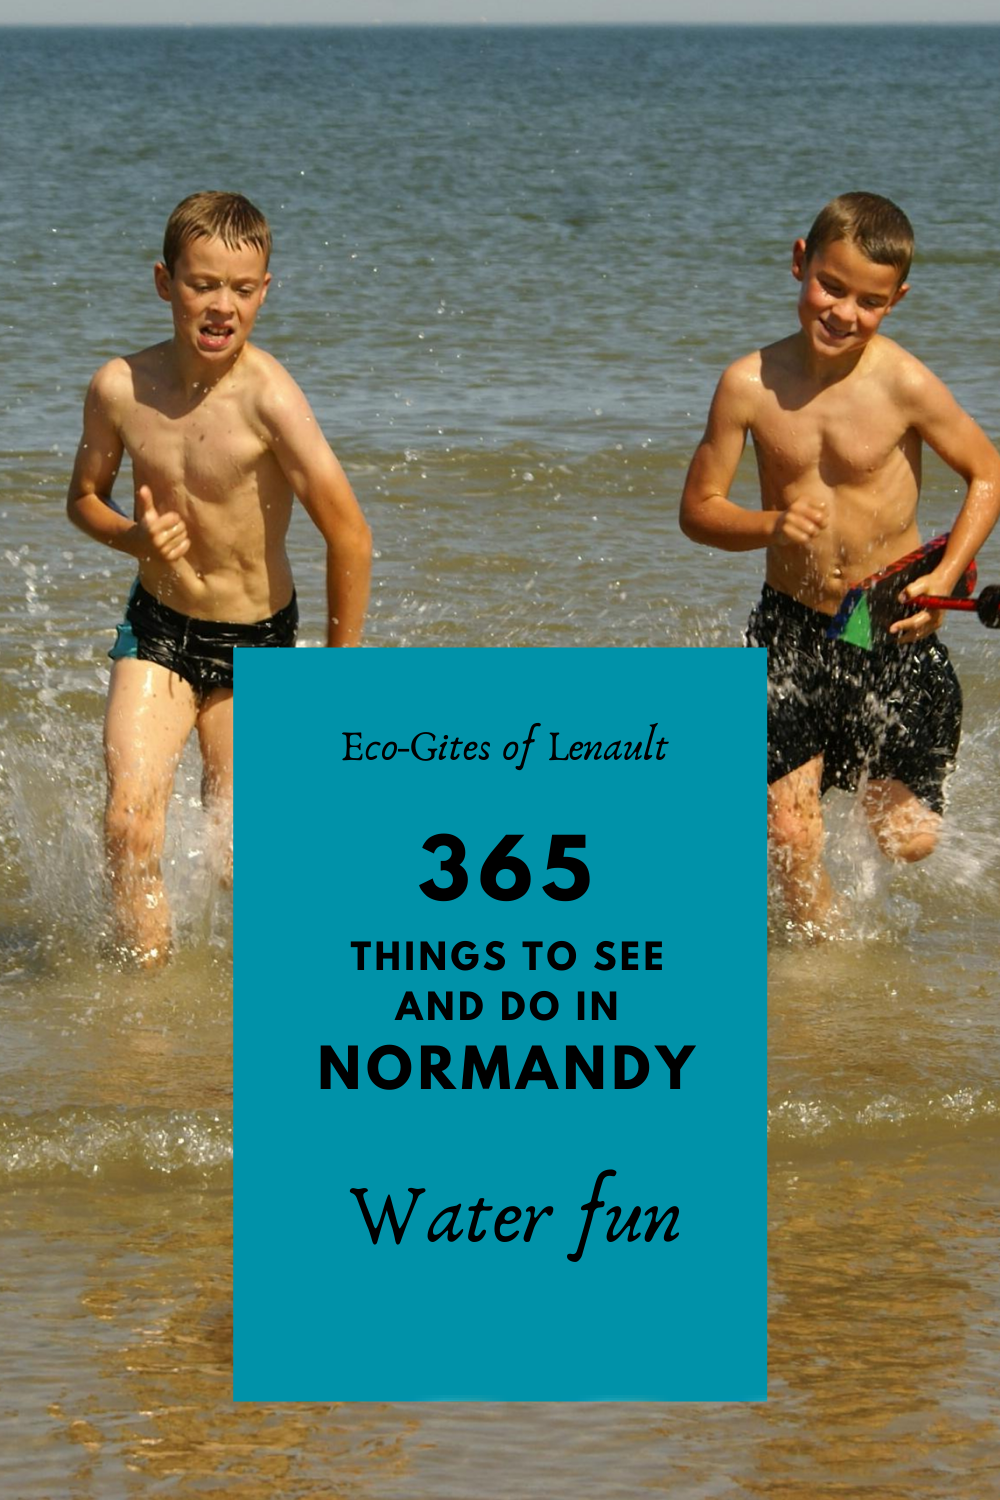 Water fun in Normandy, France